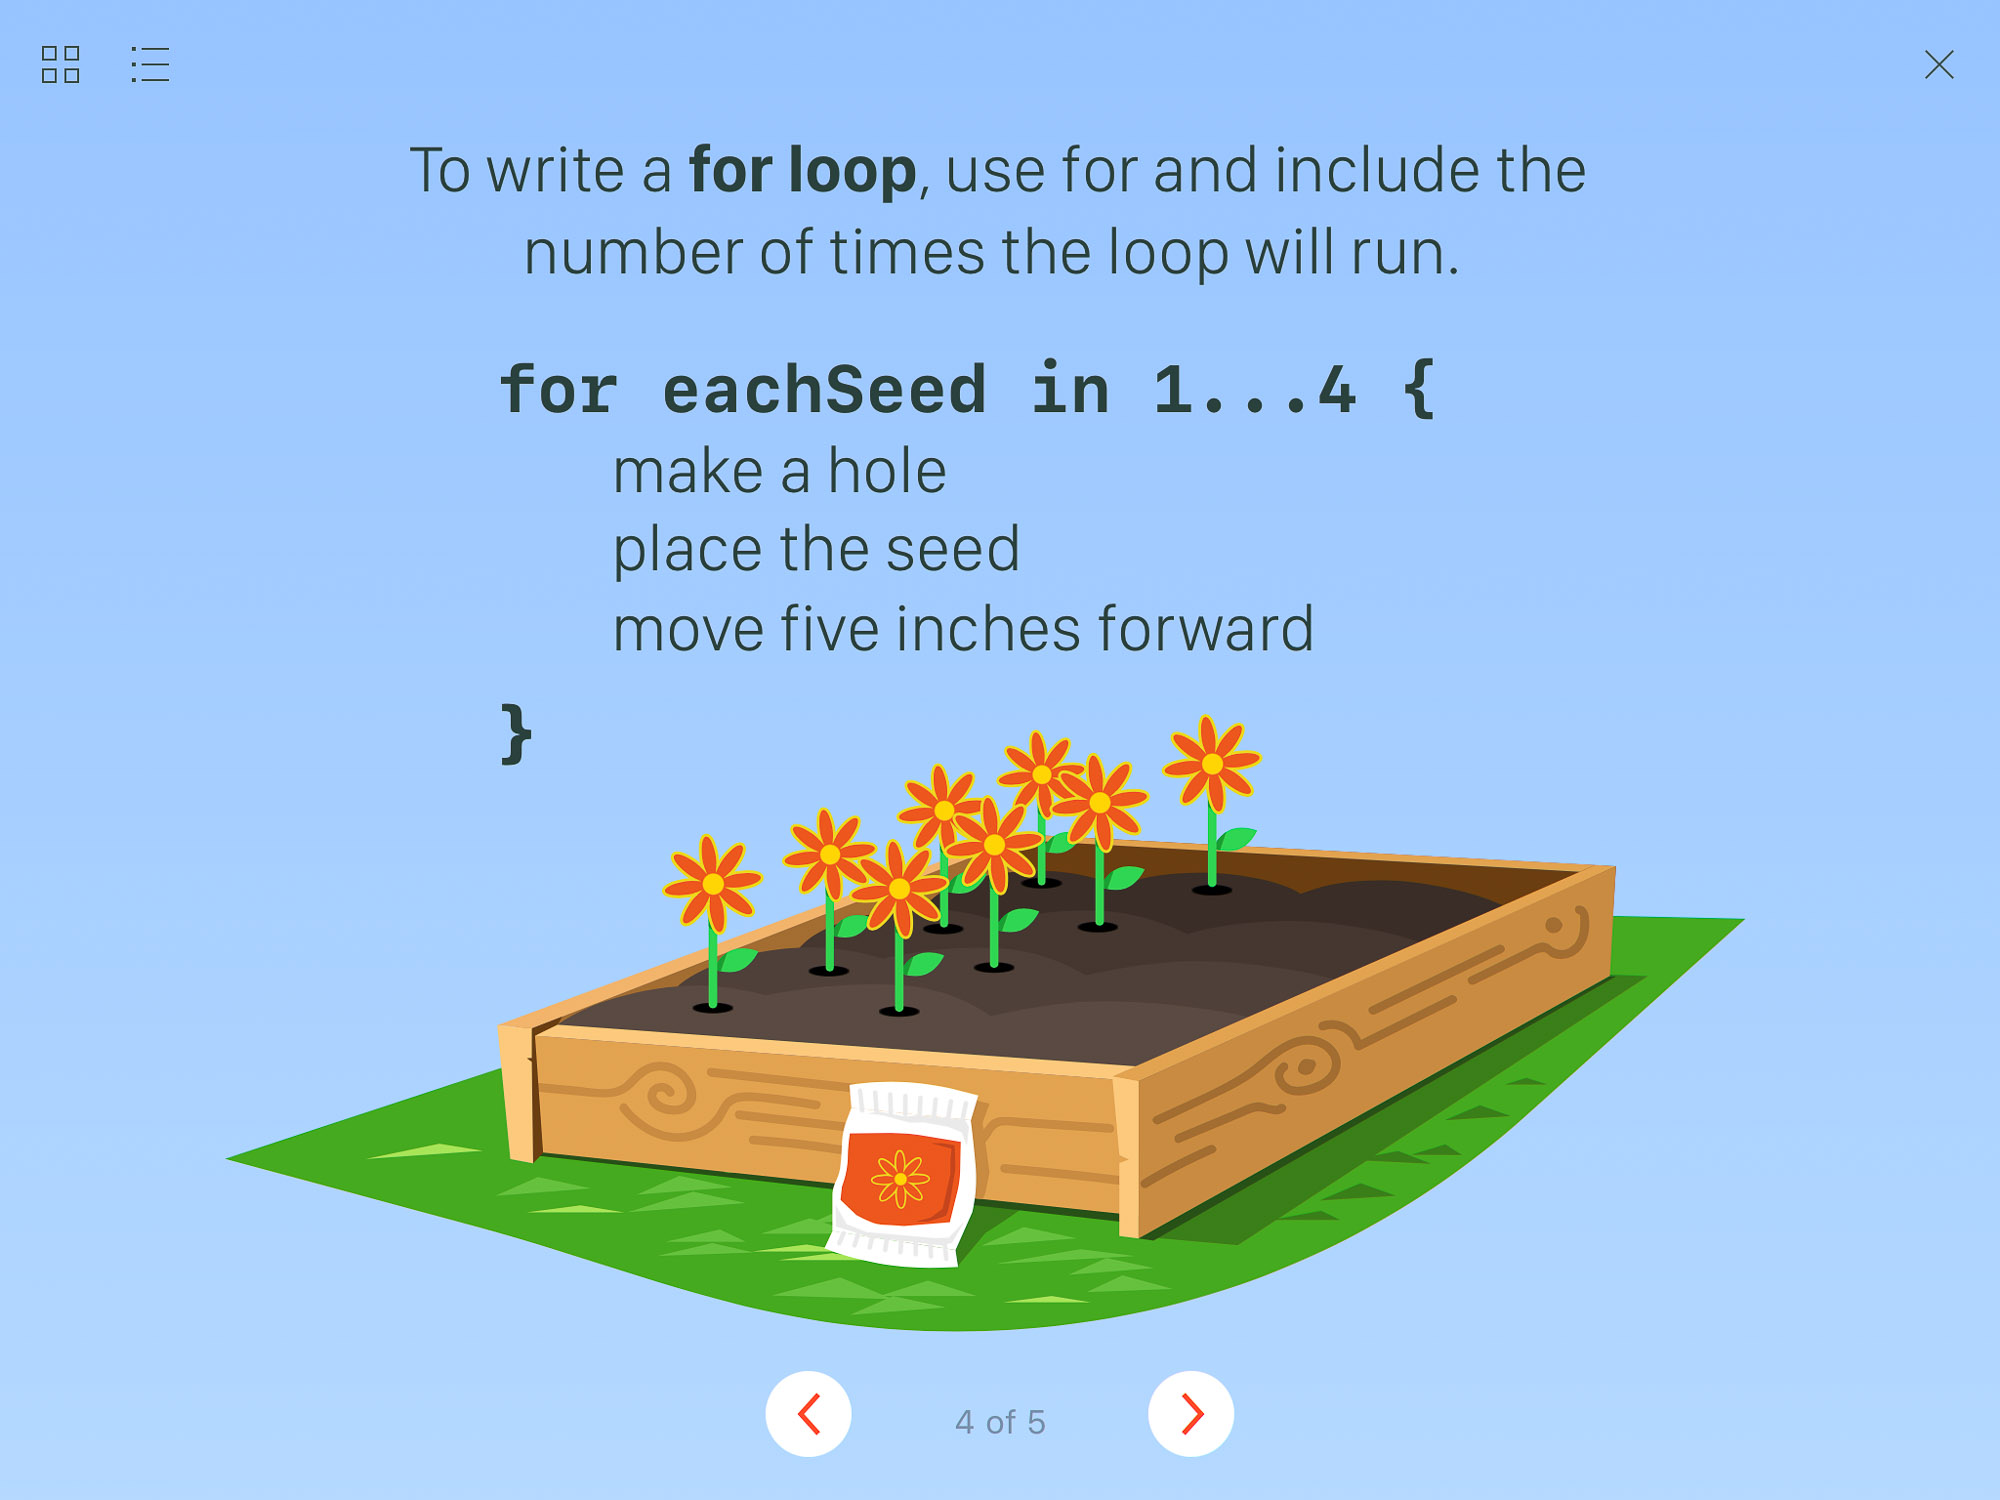 Apple's Swift Playgrounds app uses an example of planting seeds to describe how a for loop automates repeated tasks.